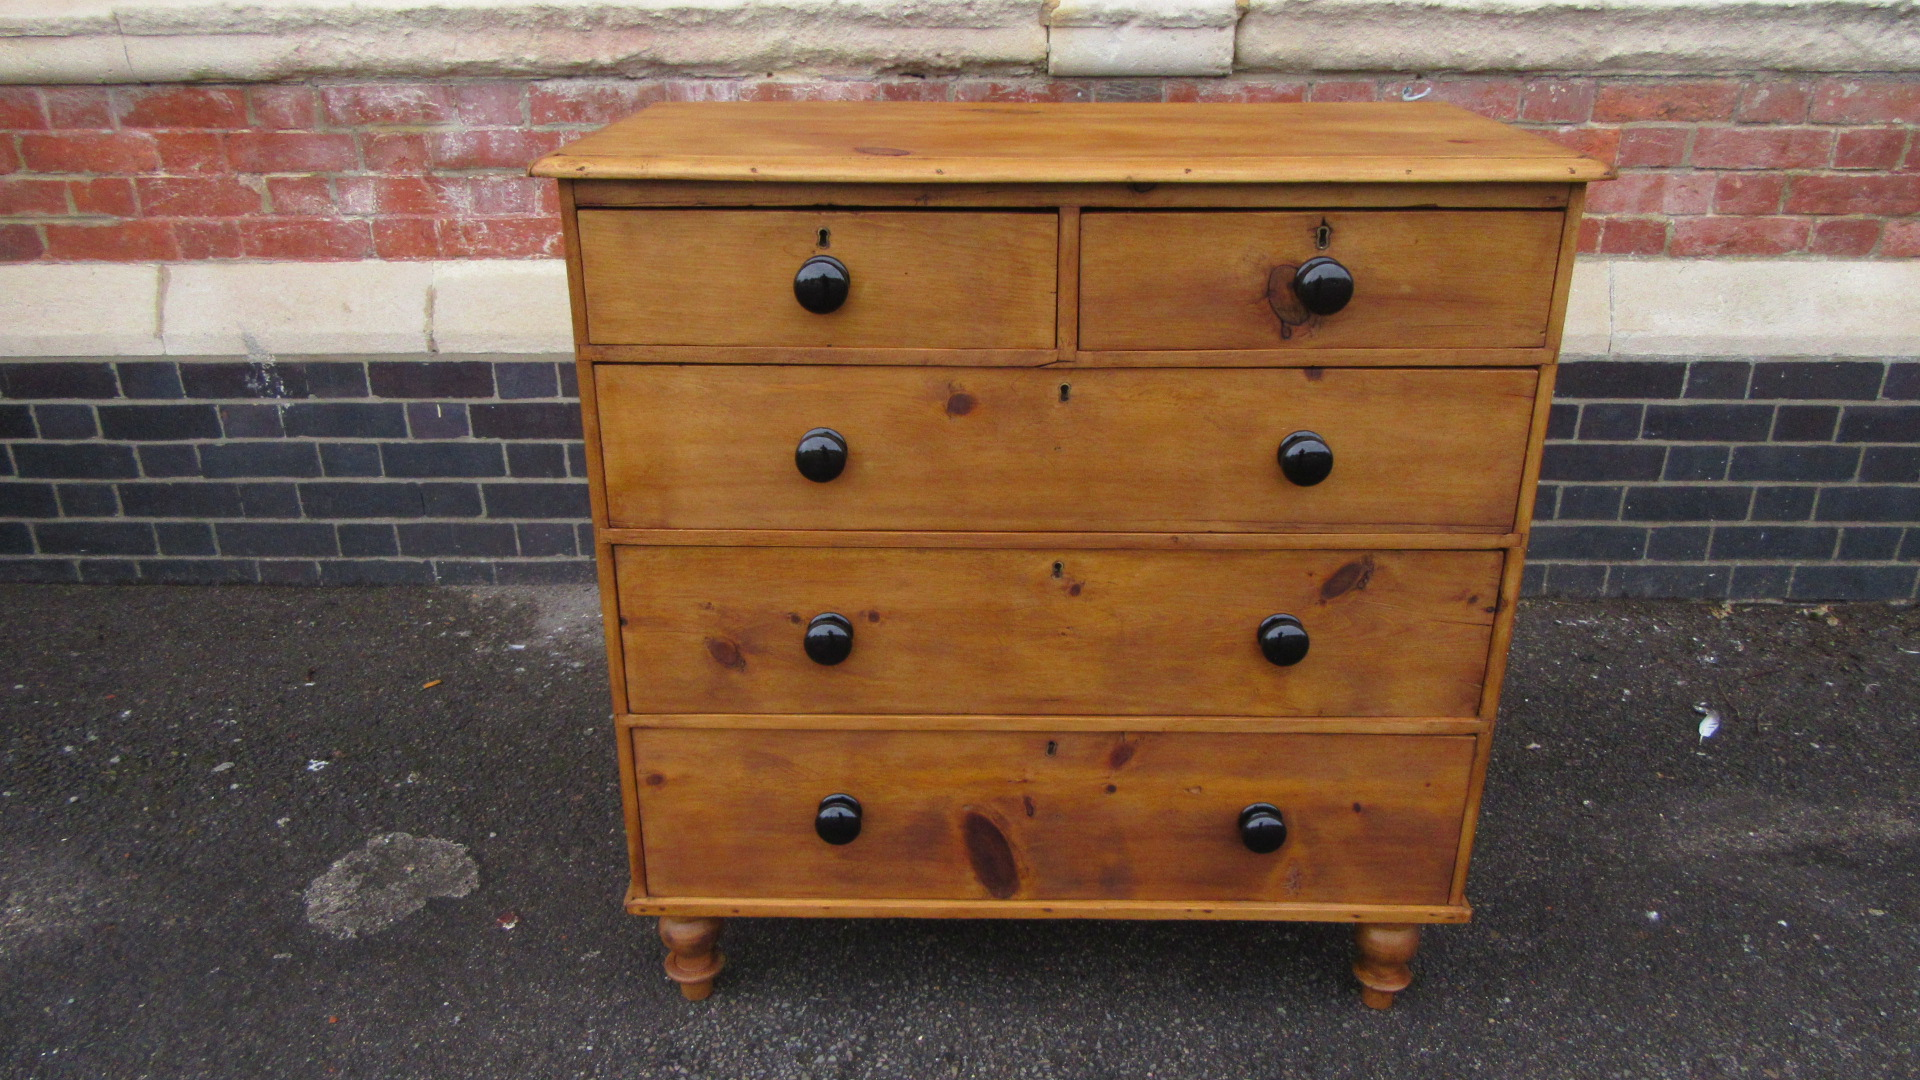 Victorian Pine Chest Of Drawers Antique Victorian Pine Chest Of Drawers Eras Of Style Eras Of